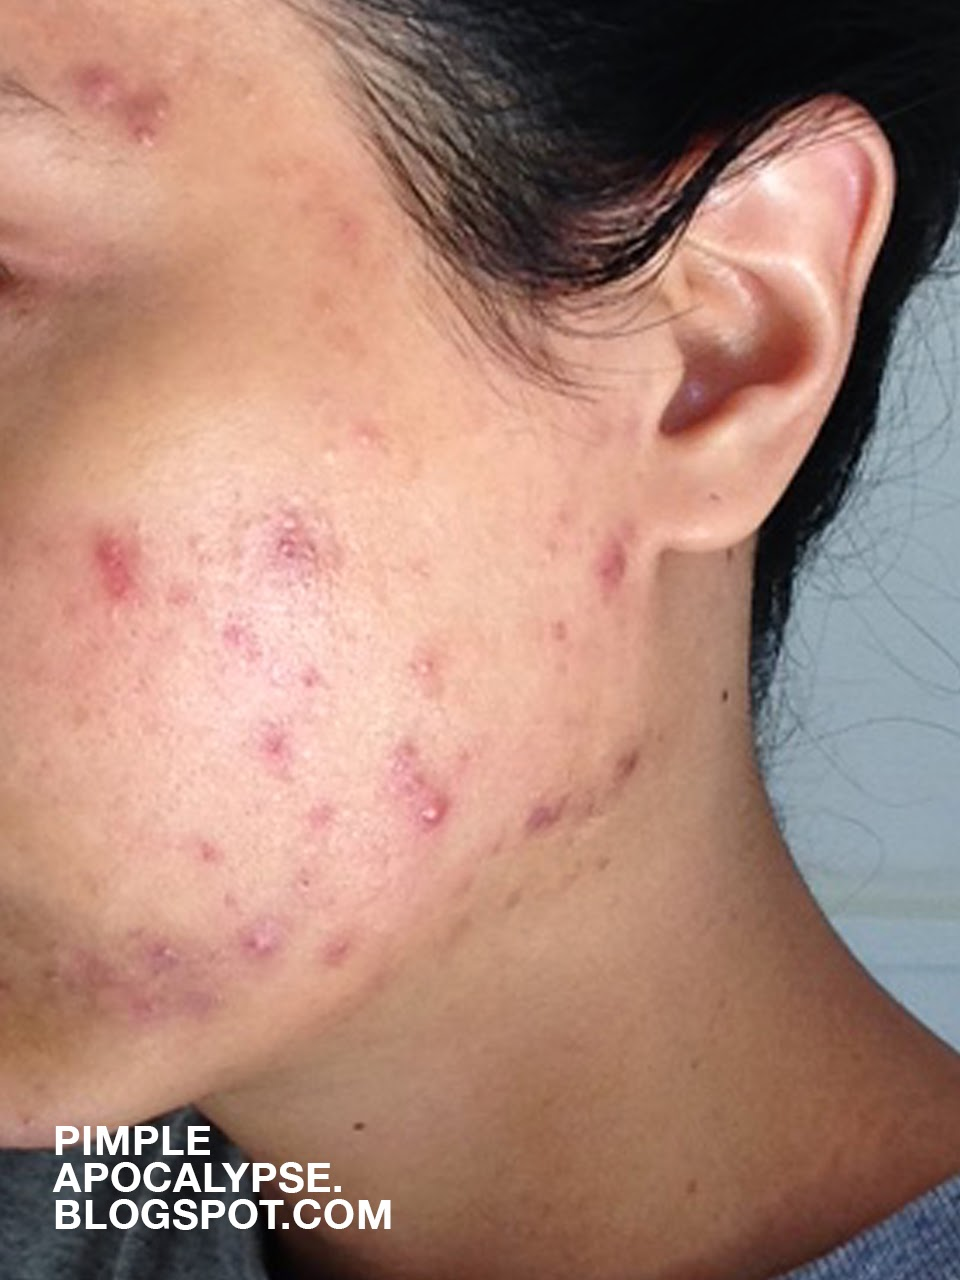 acne breakouts, clogged pores, asian skin, hyper pigmentation, closed comedo, whiteheads